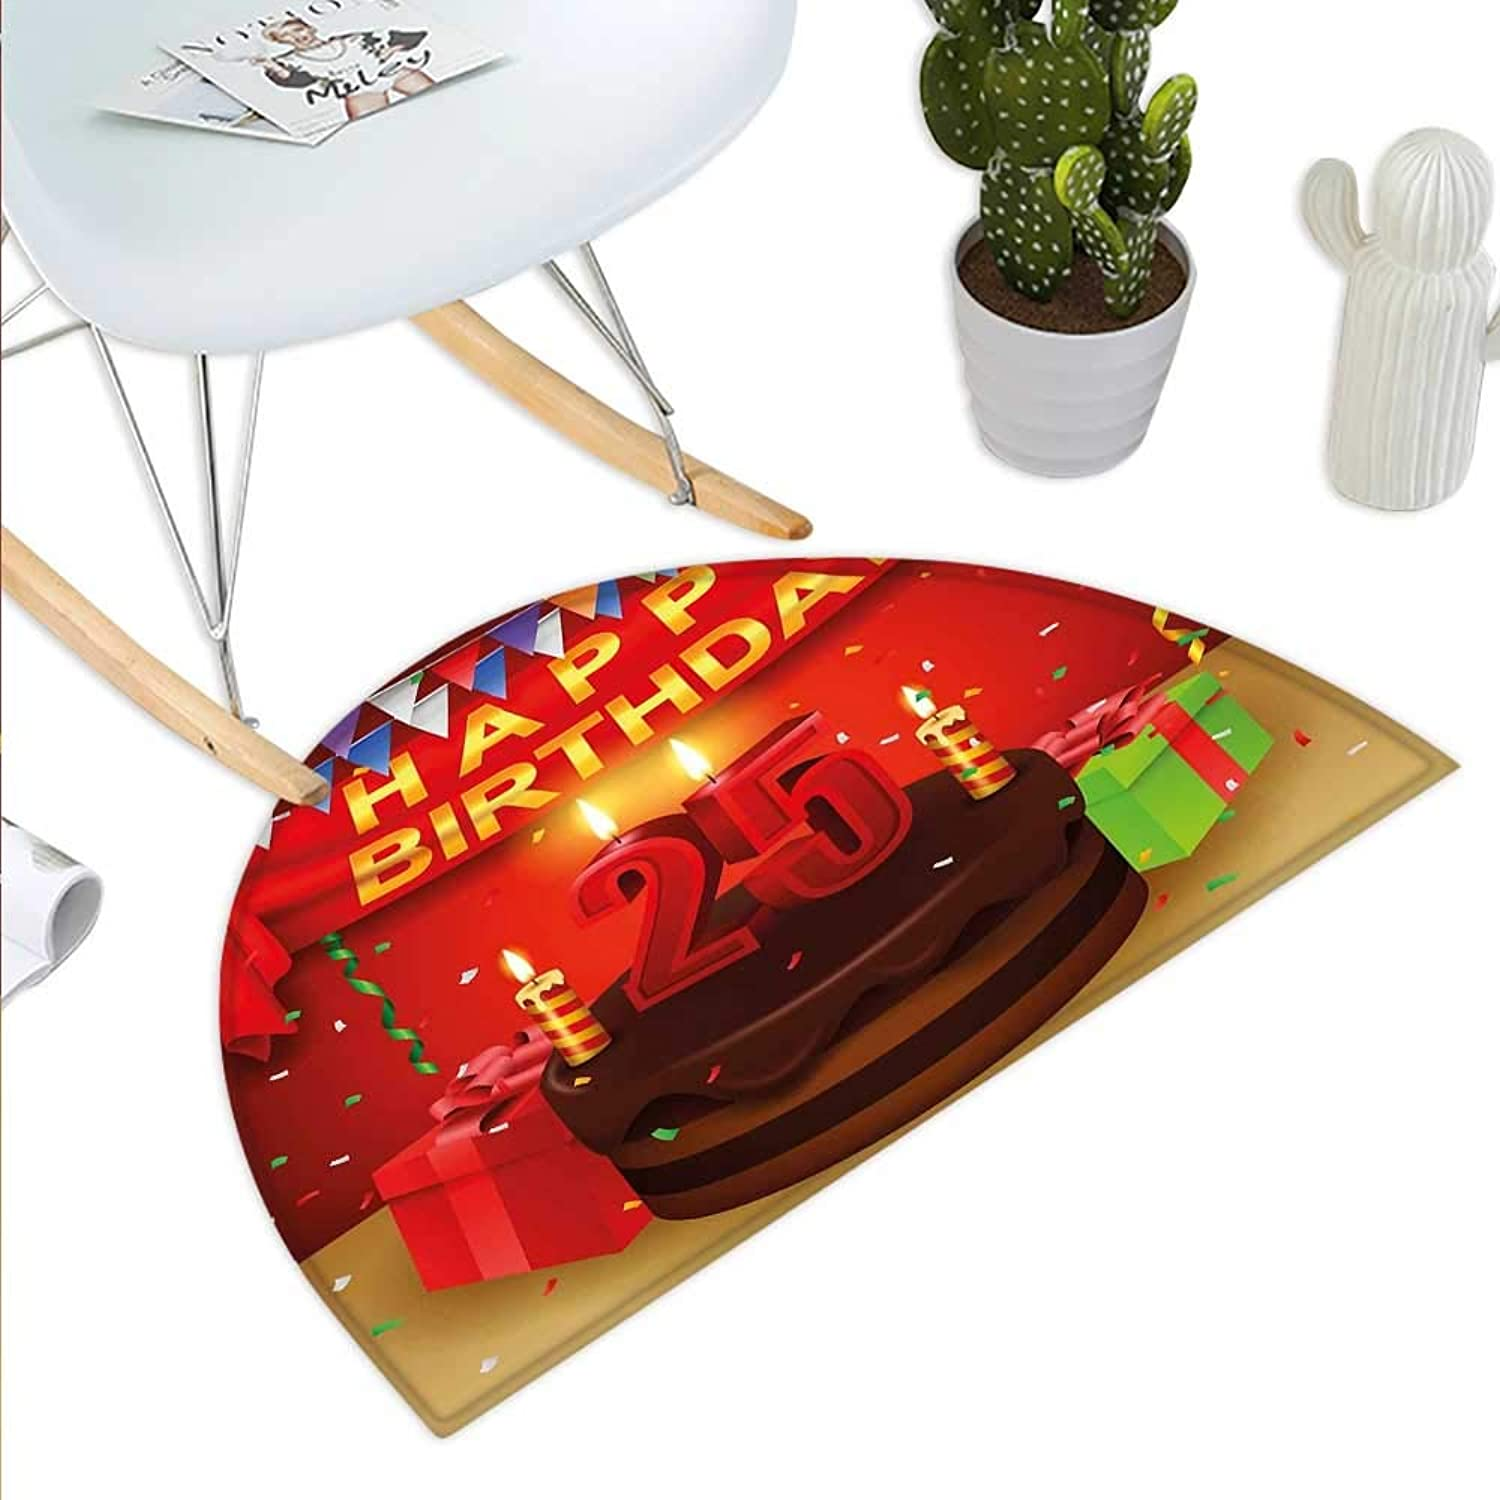 25th Birthday Semicircle Doormat Triangular Flags Presents Boxes Confetti Rain on Table with Cake colorful Halfmoon doormats H 43.3  xD 64.9  Multicolor